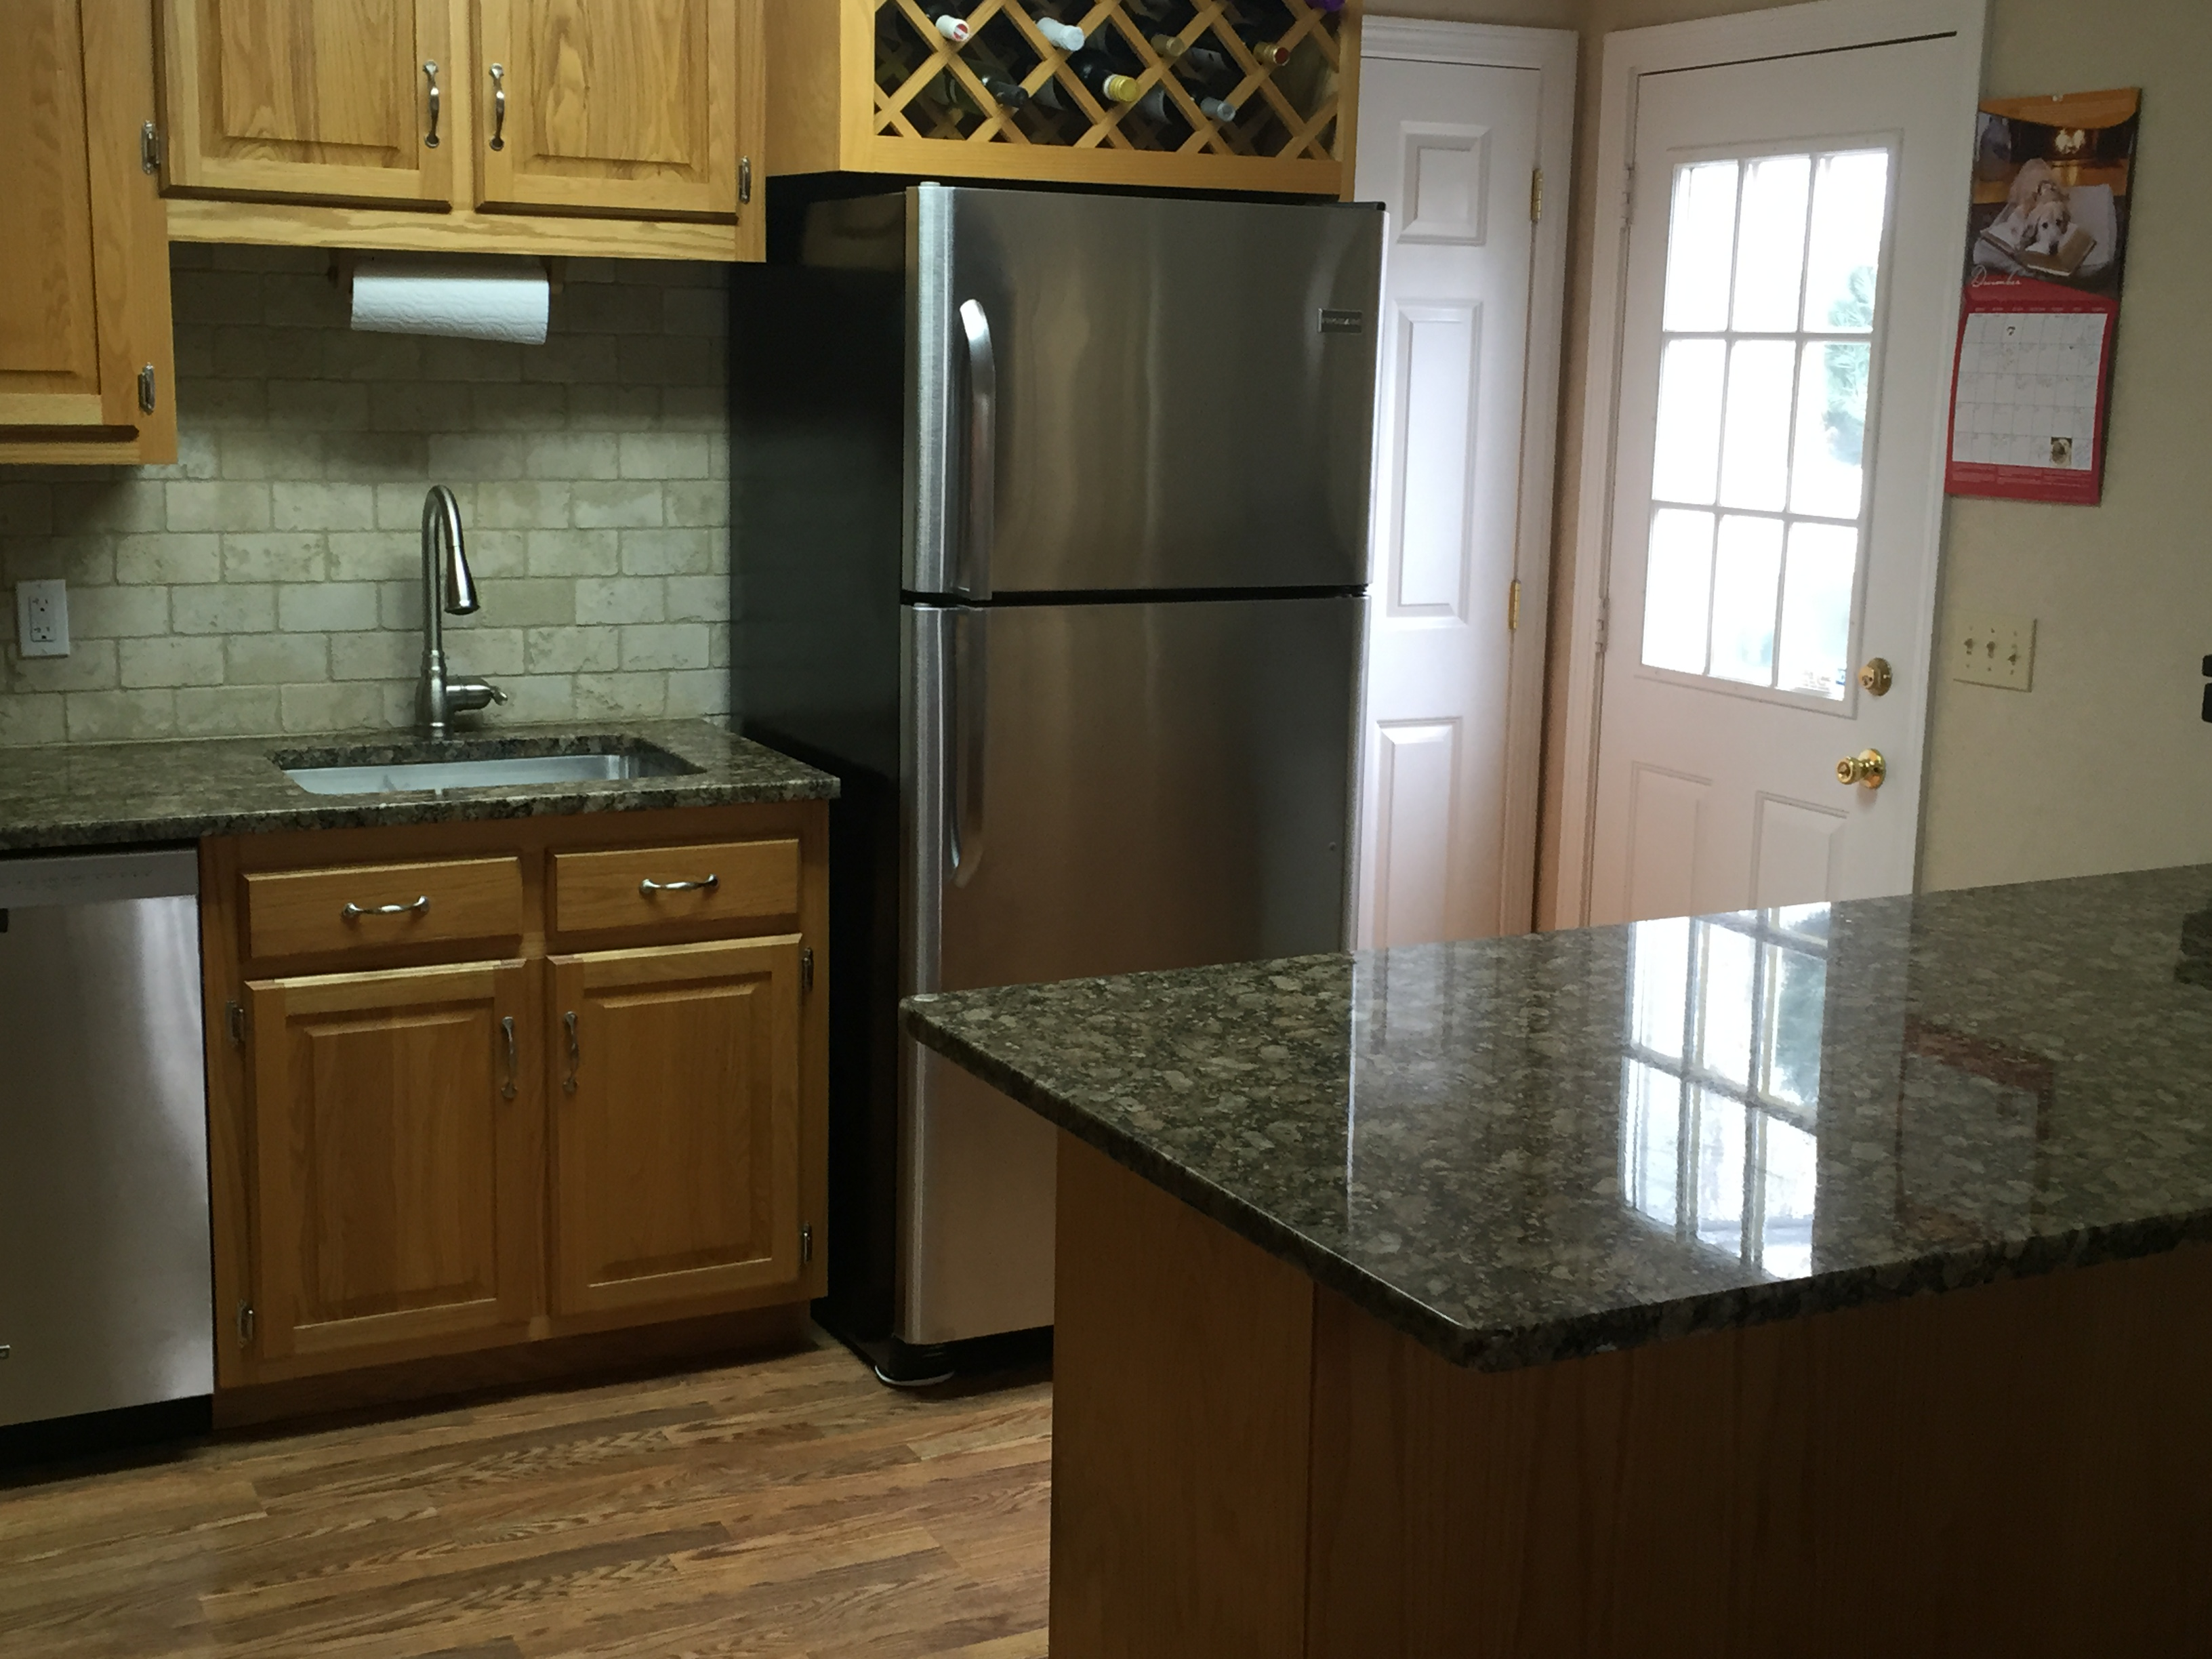 Kitchen cabinets middletown ct - Property Maintenance Middletown Ct